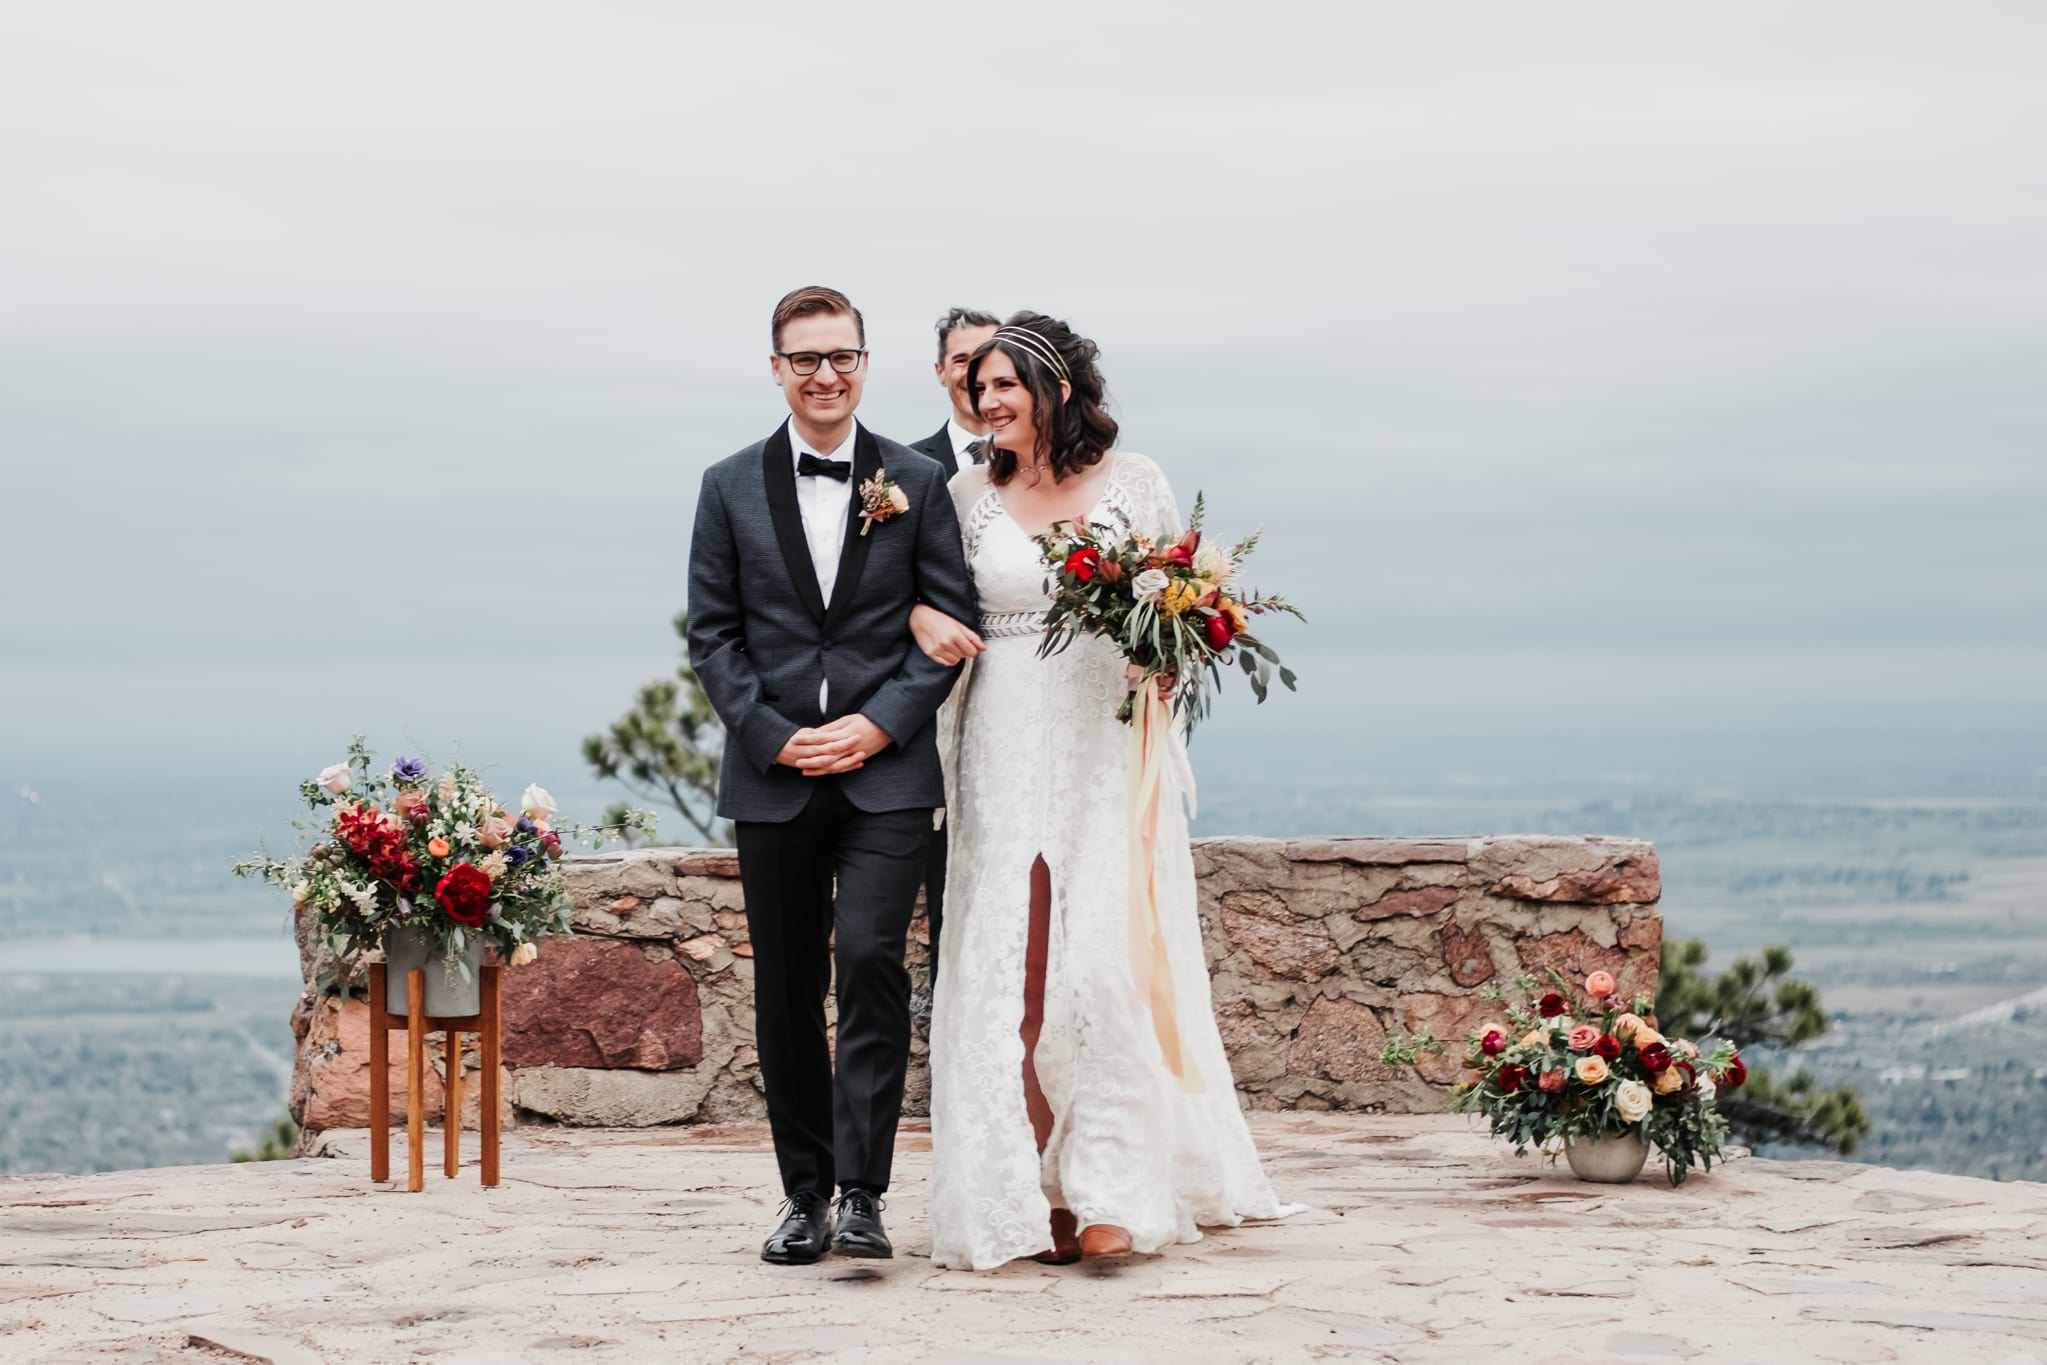 Sunrise Amphitheater Elopement, Boulder wedding photographer, wedding dress by Rue de Seine bridal